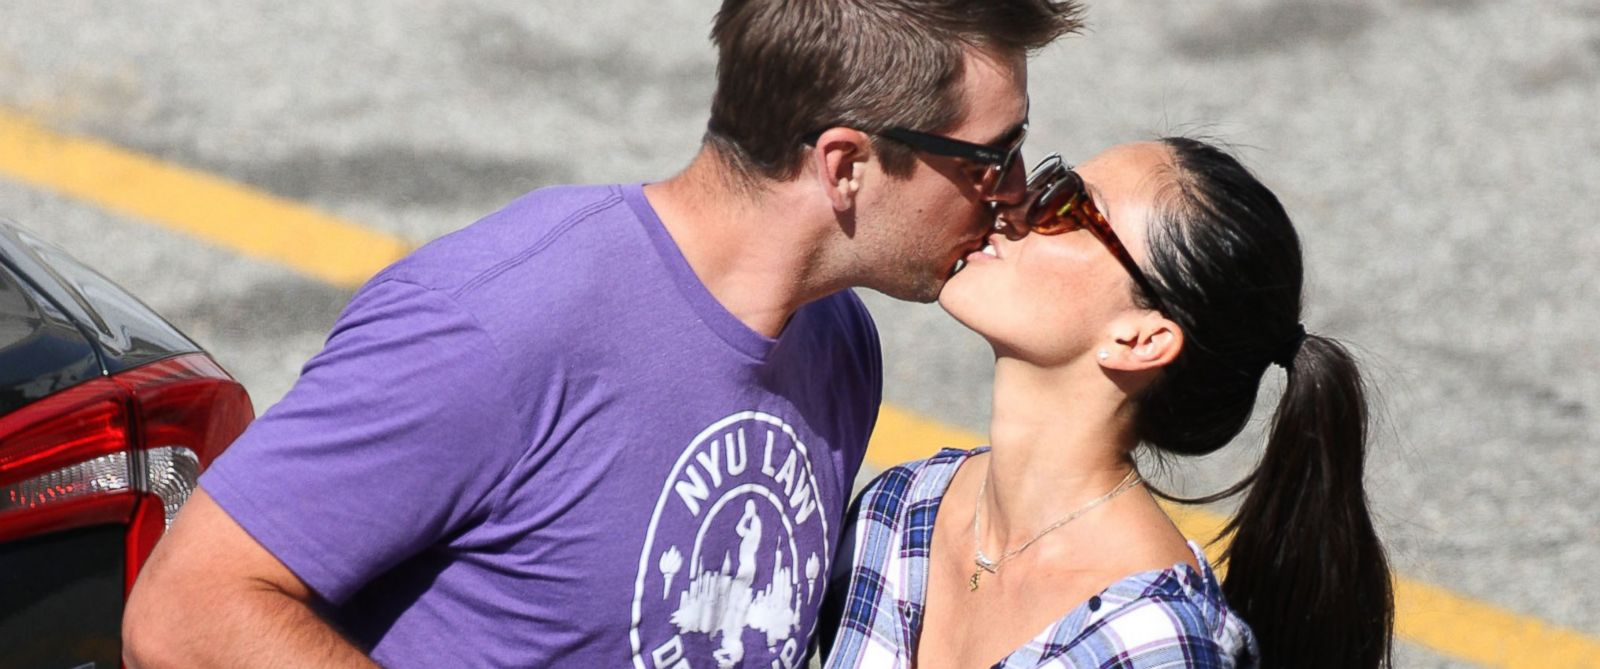 PHOTO: New hot Hollywood couple Olivia Munn and football star Aaron Rodgers kiss as he visits her on the set of her hit HBO show the Newsroom shooting on location in Los Angeles,Ca.